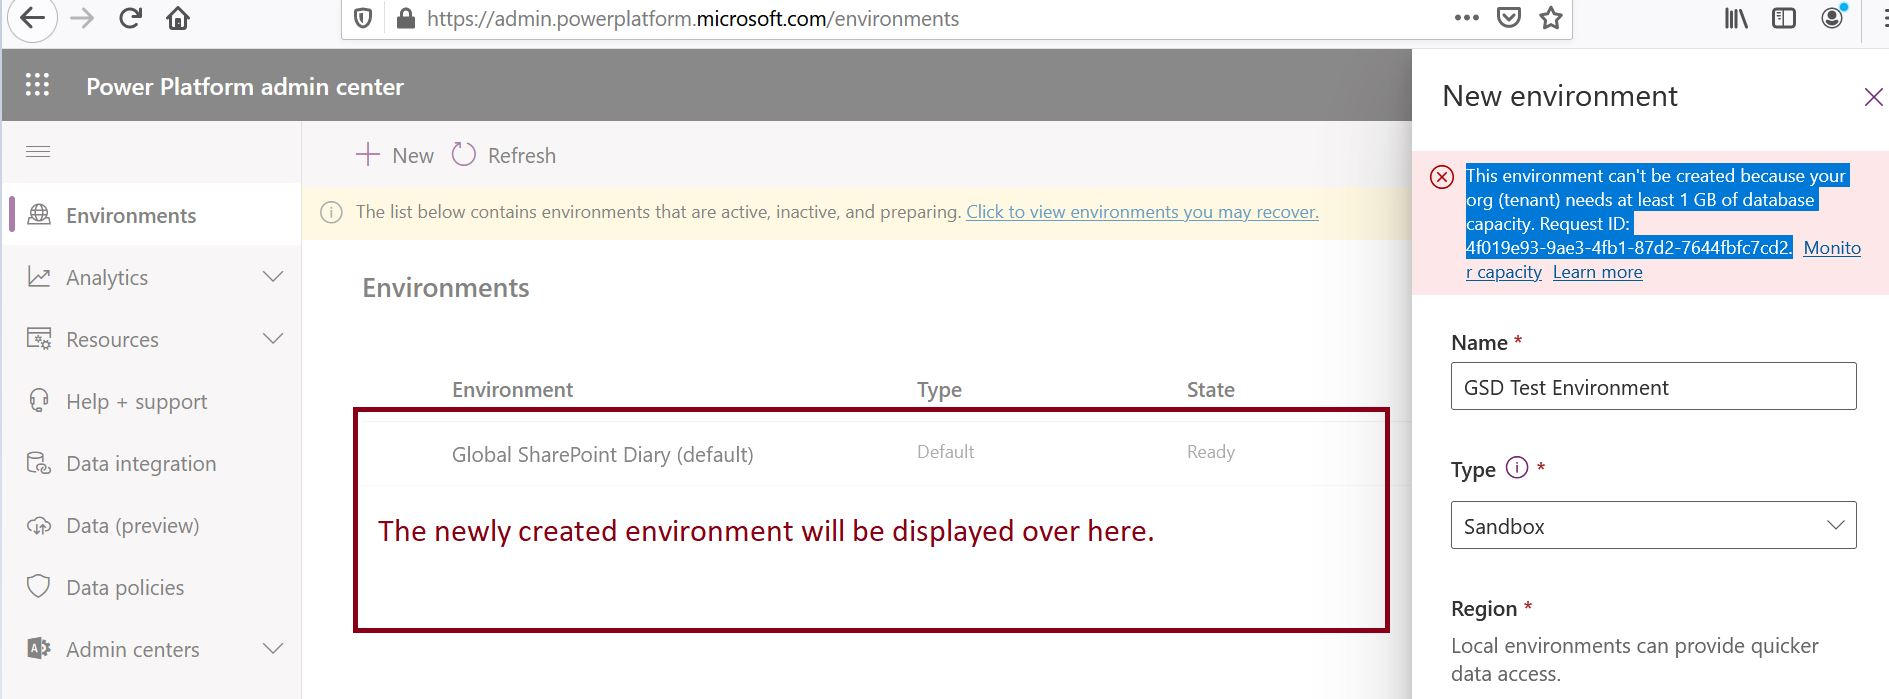 The location of newly created environment in Power Platform admin center